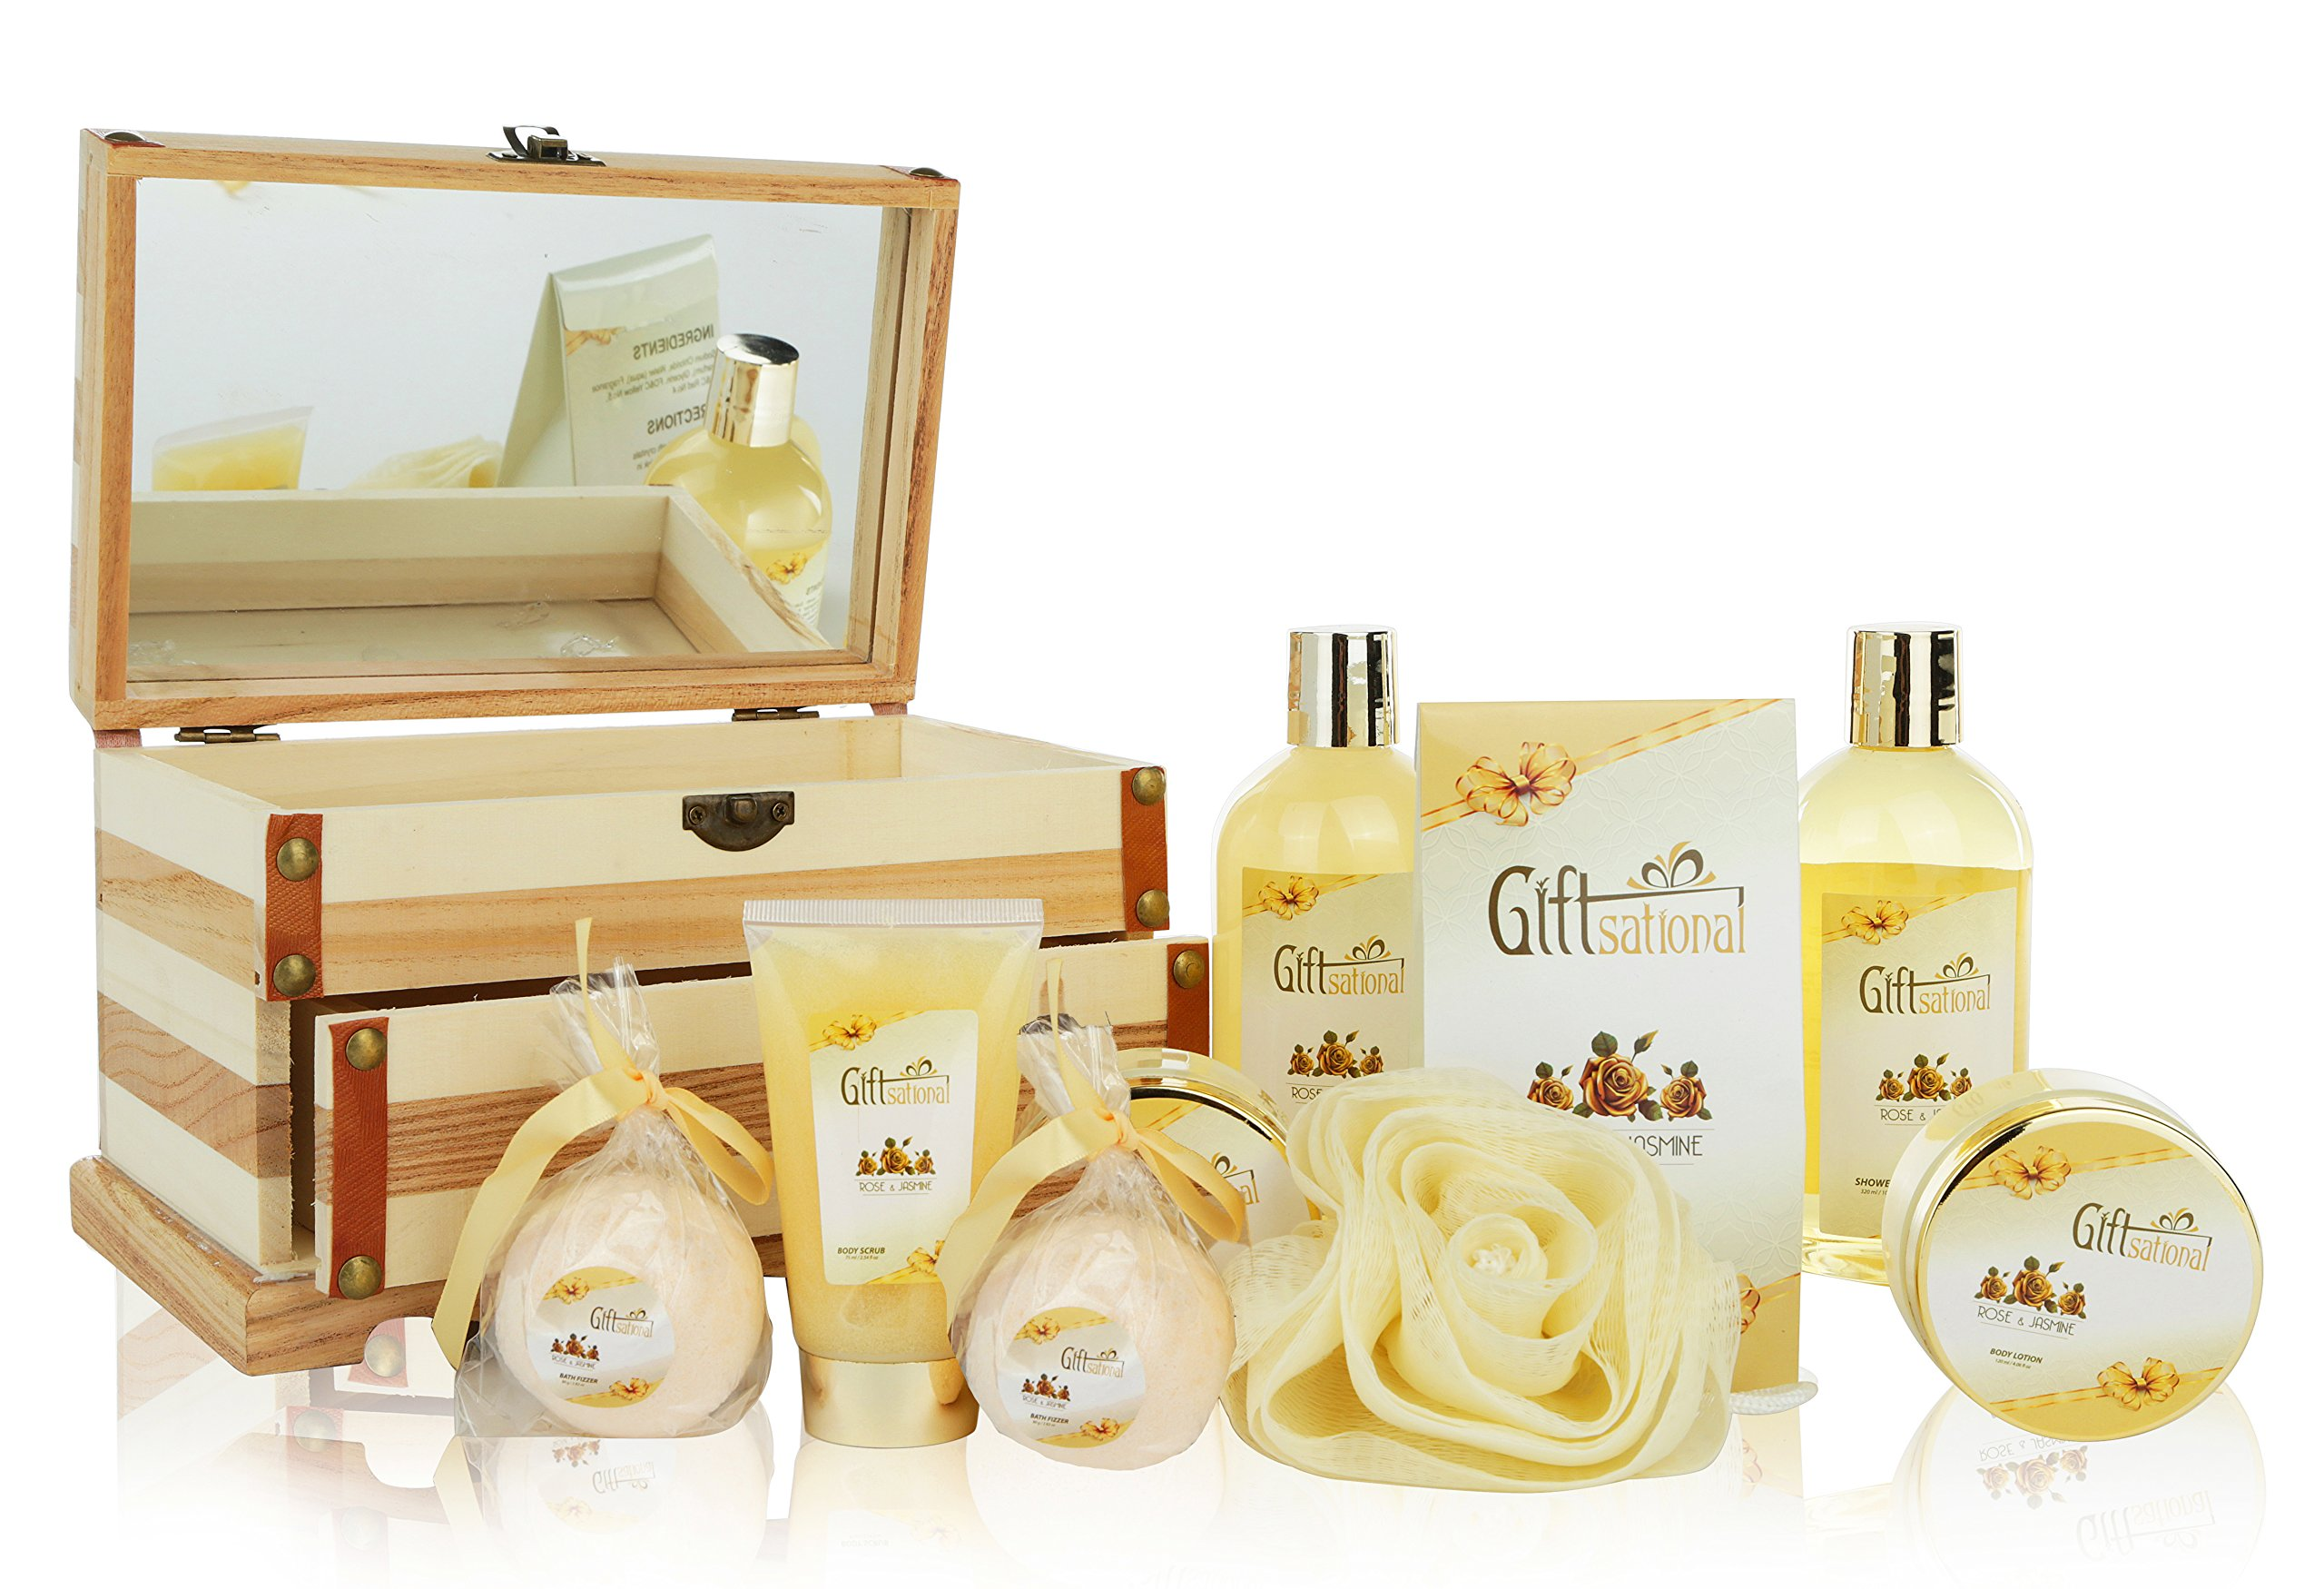 Spa Gift Basket Refreshing Rose & Jasmine Fragrance, Beautiful Wooden Gift Box with Mirror, Perfect Wedding, Birthday or Anniversary Gift, Bath gift Set Includes Shower Gel, Bath Bombs and More! by Giftsational (Image #3)